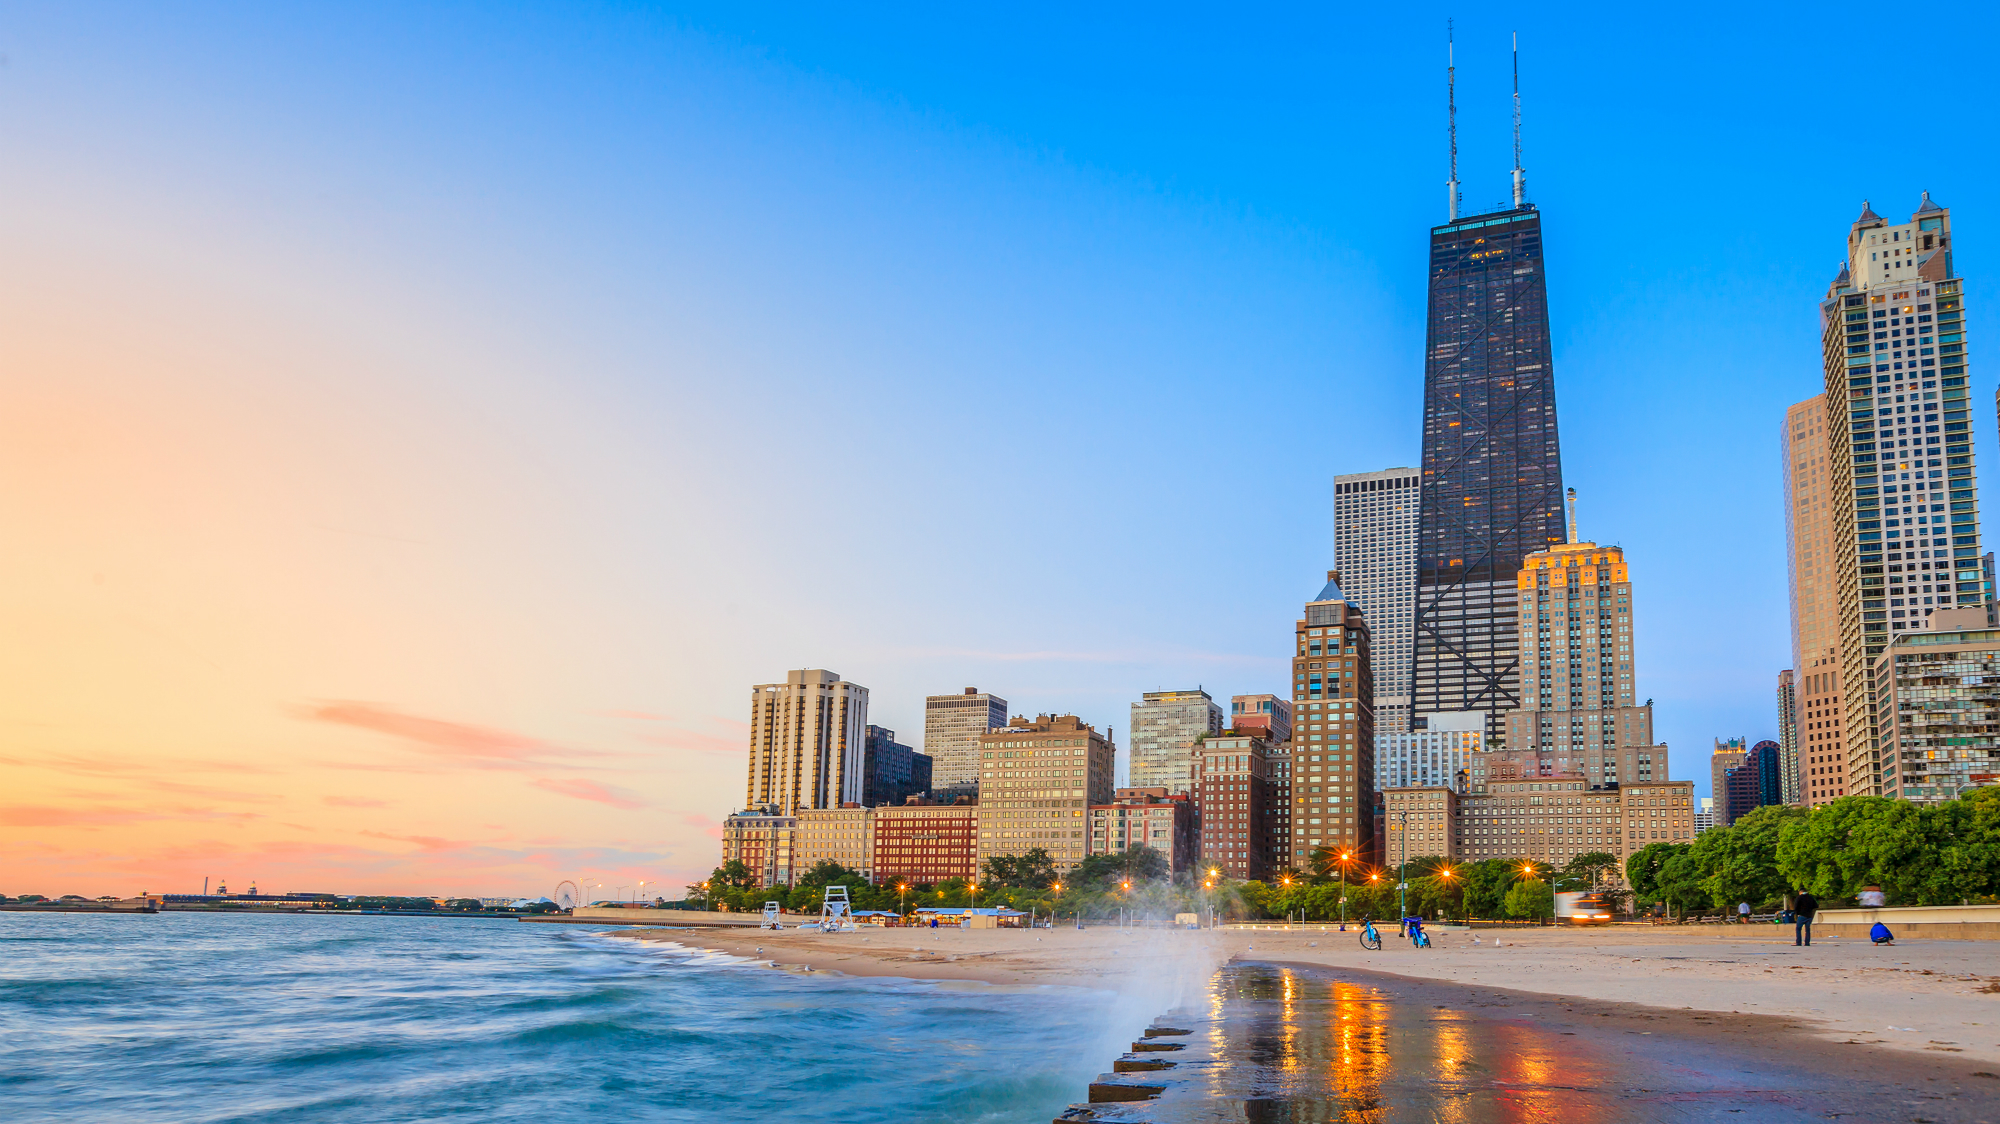 2019 American Academy of Periodontology Annual Meeting